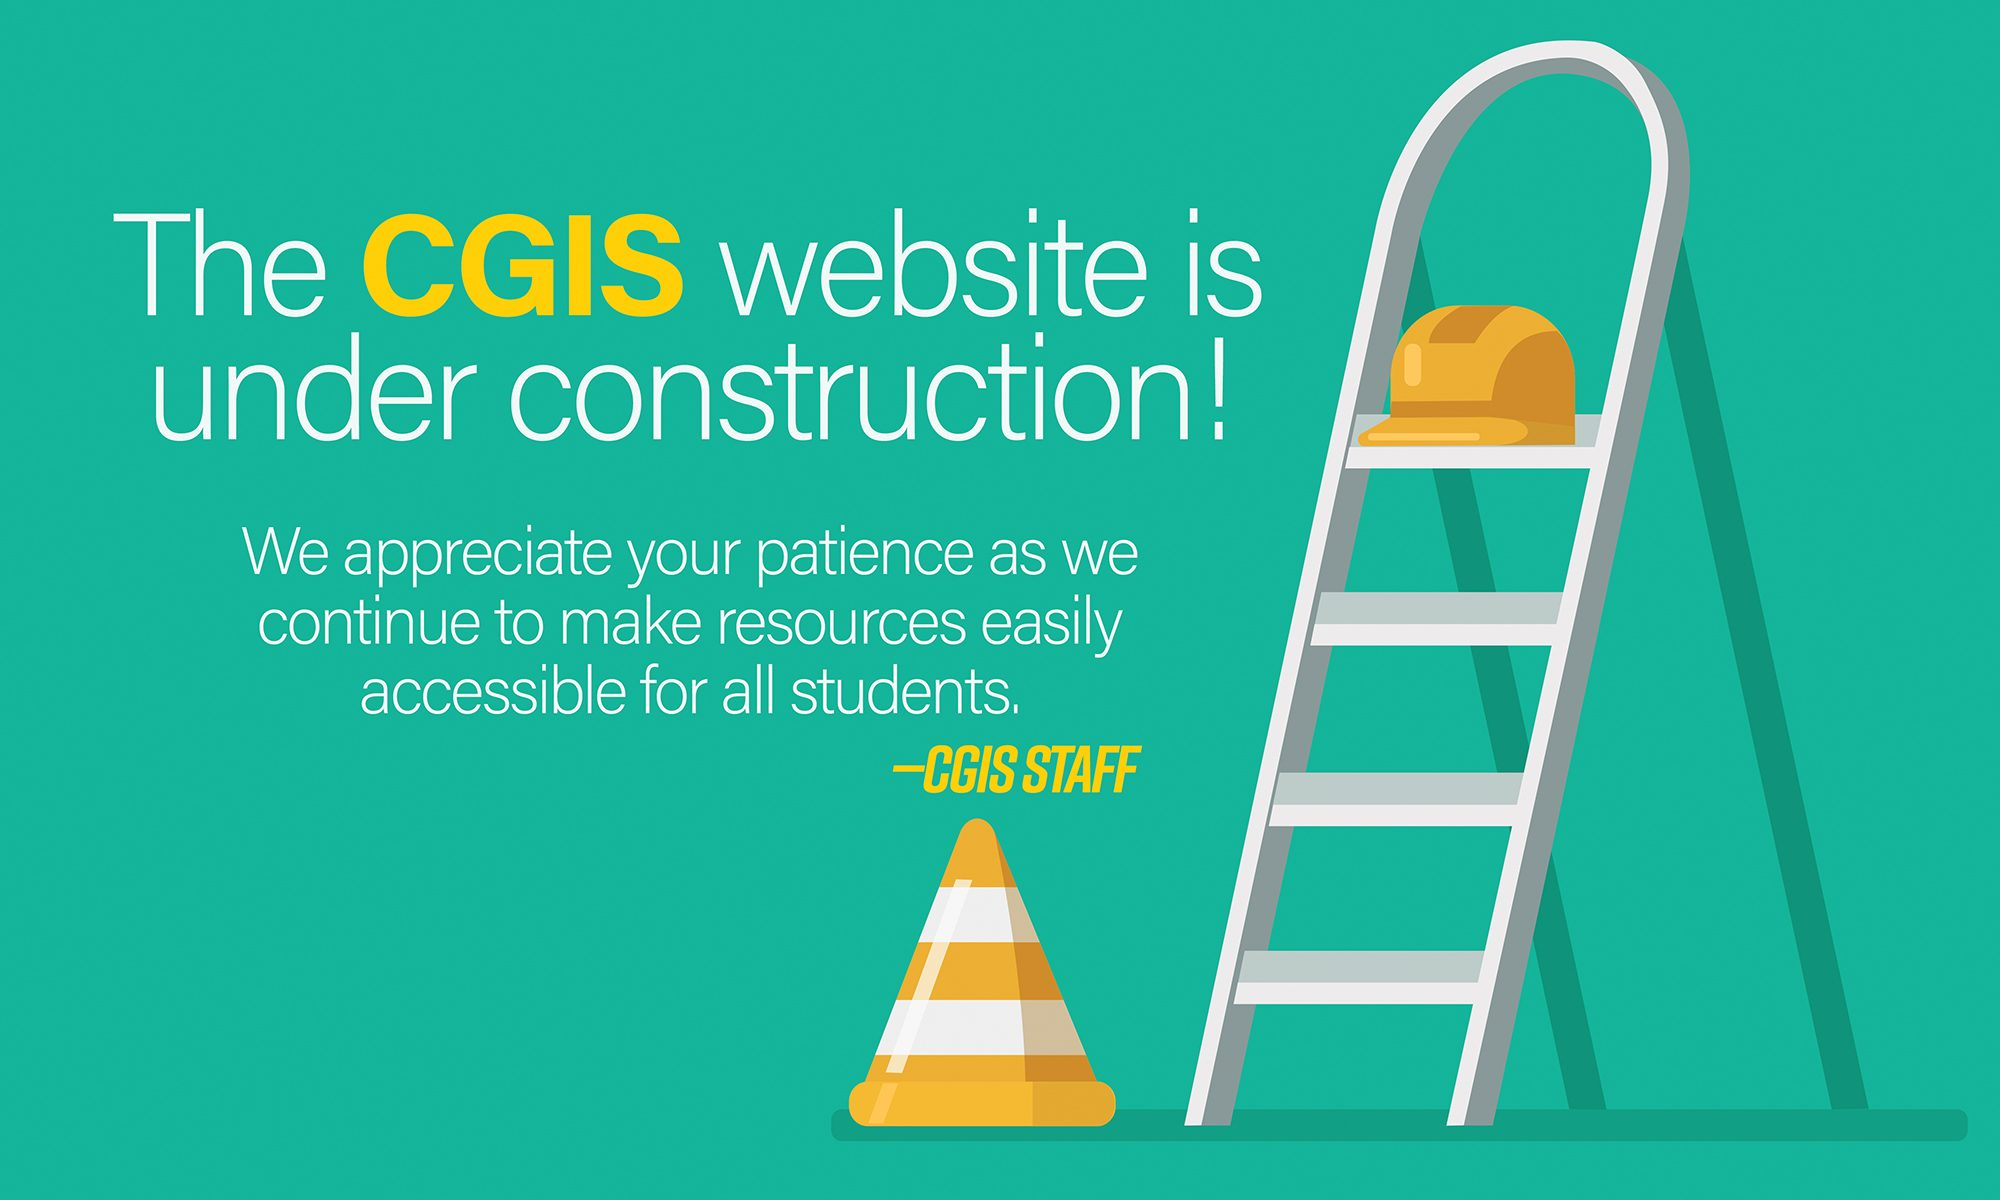 The CGIS website is under construction! We appreciate your patience as we continue to make resources easily accessible for all students.  Sincerely, CGIS Staff.